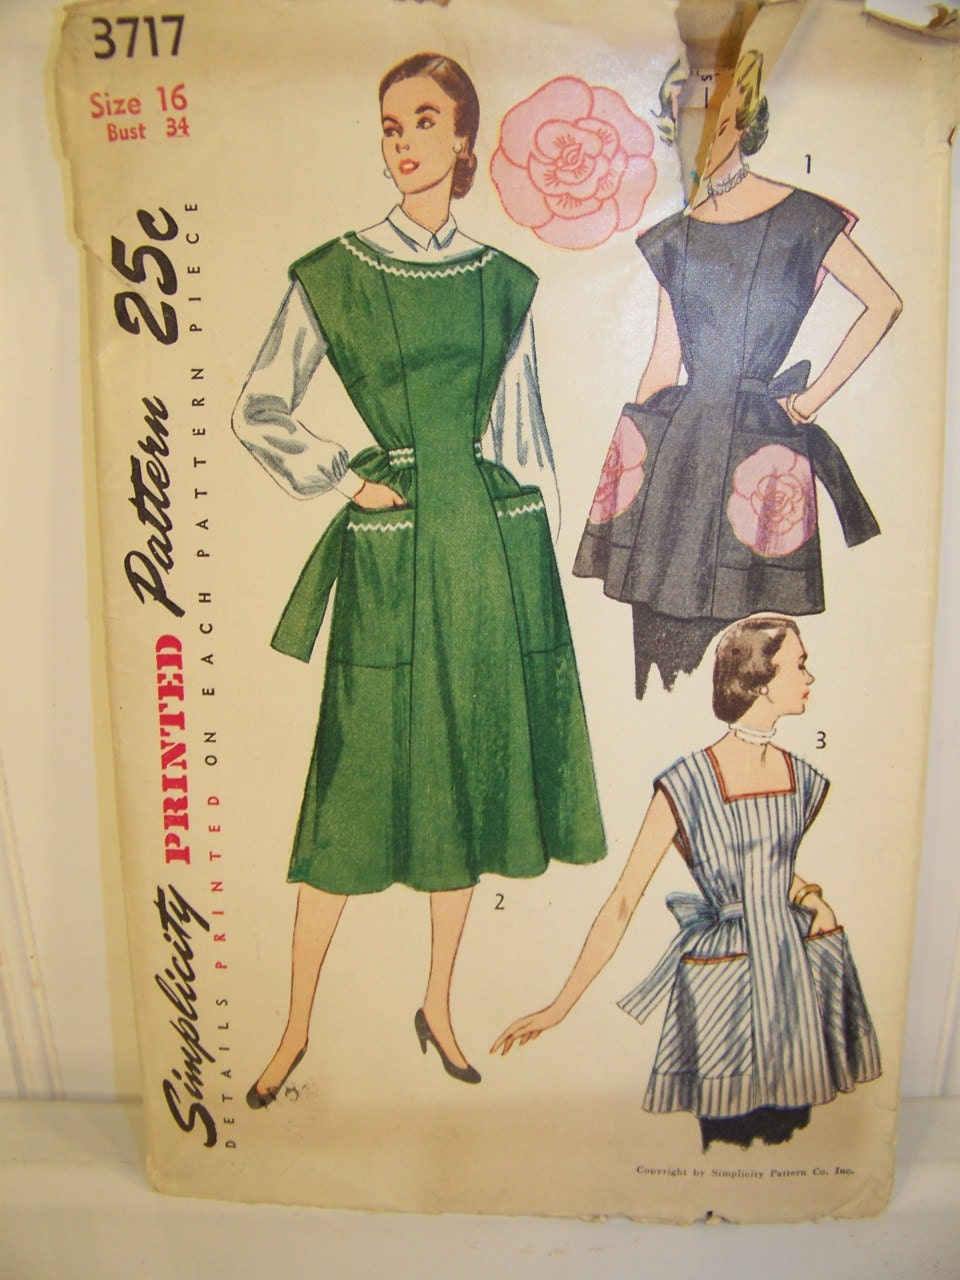 Vintage Simplicity Apron Sewing Pattern 3717 by ...